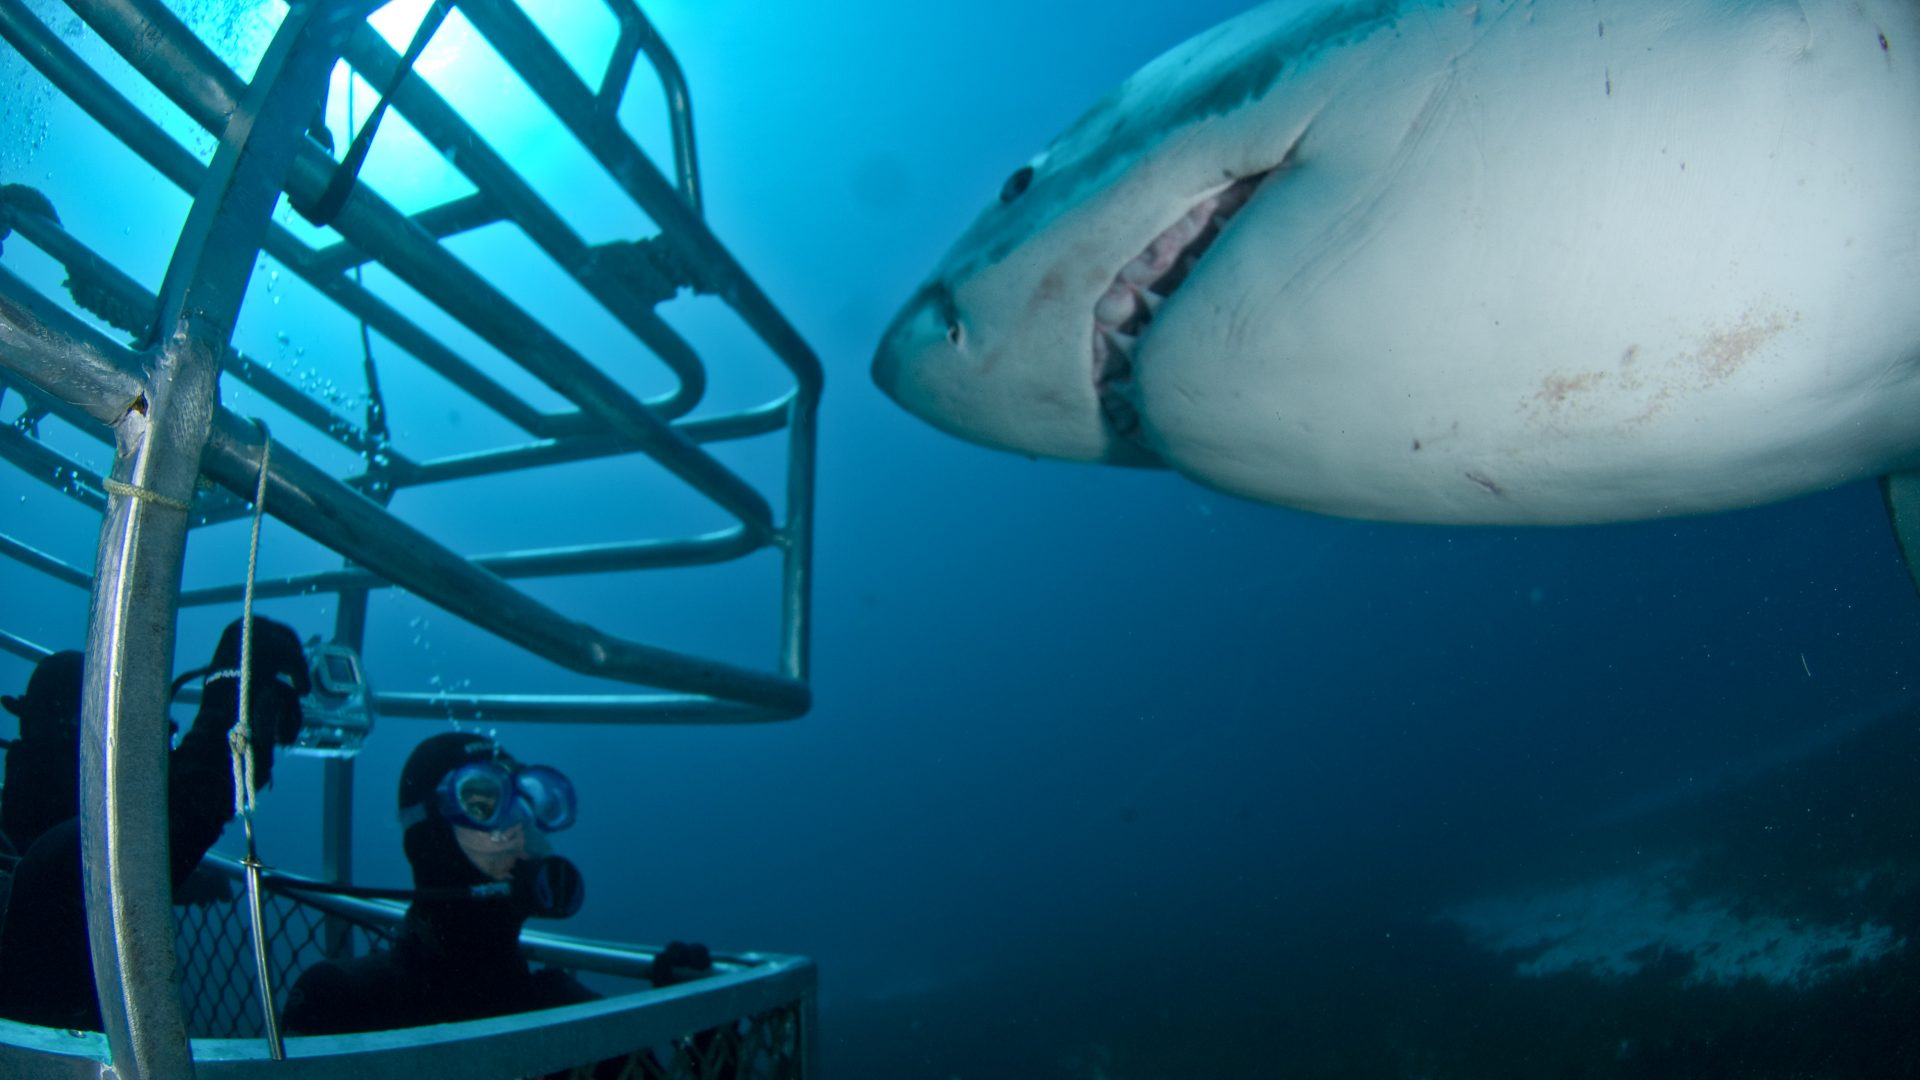 Ocean floor shark cage diving with Rodney Fox Expeditions, Australia.